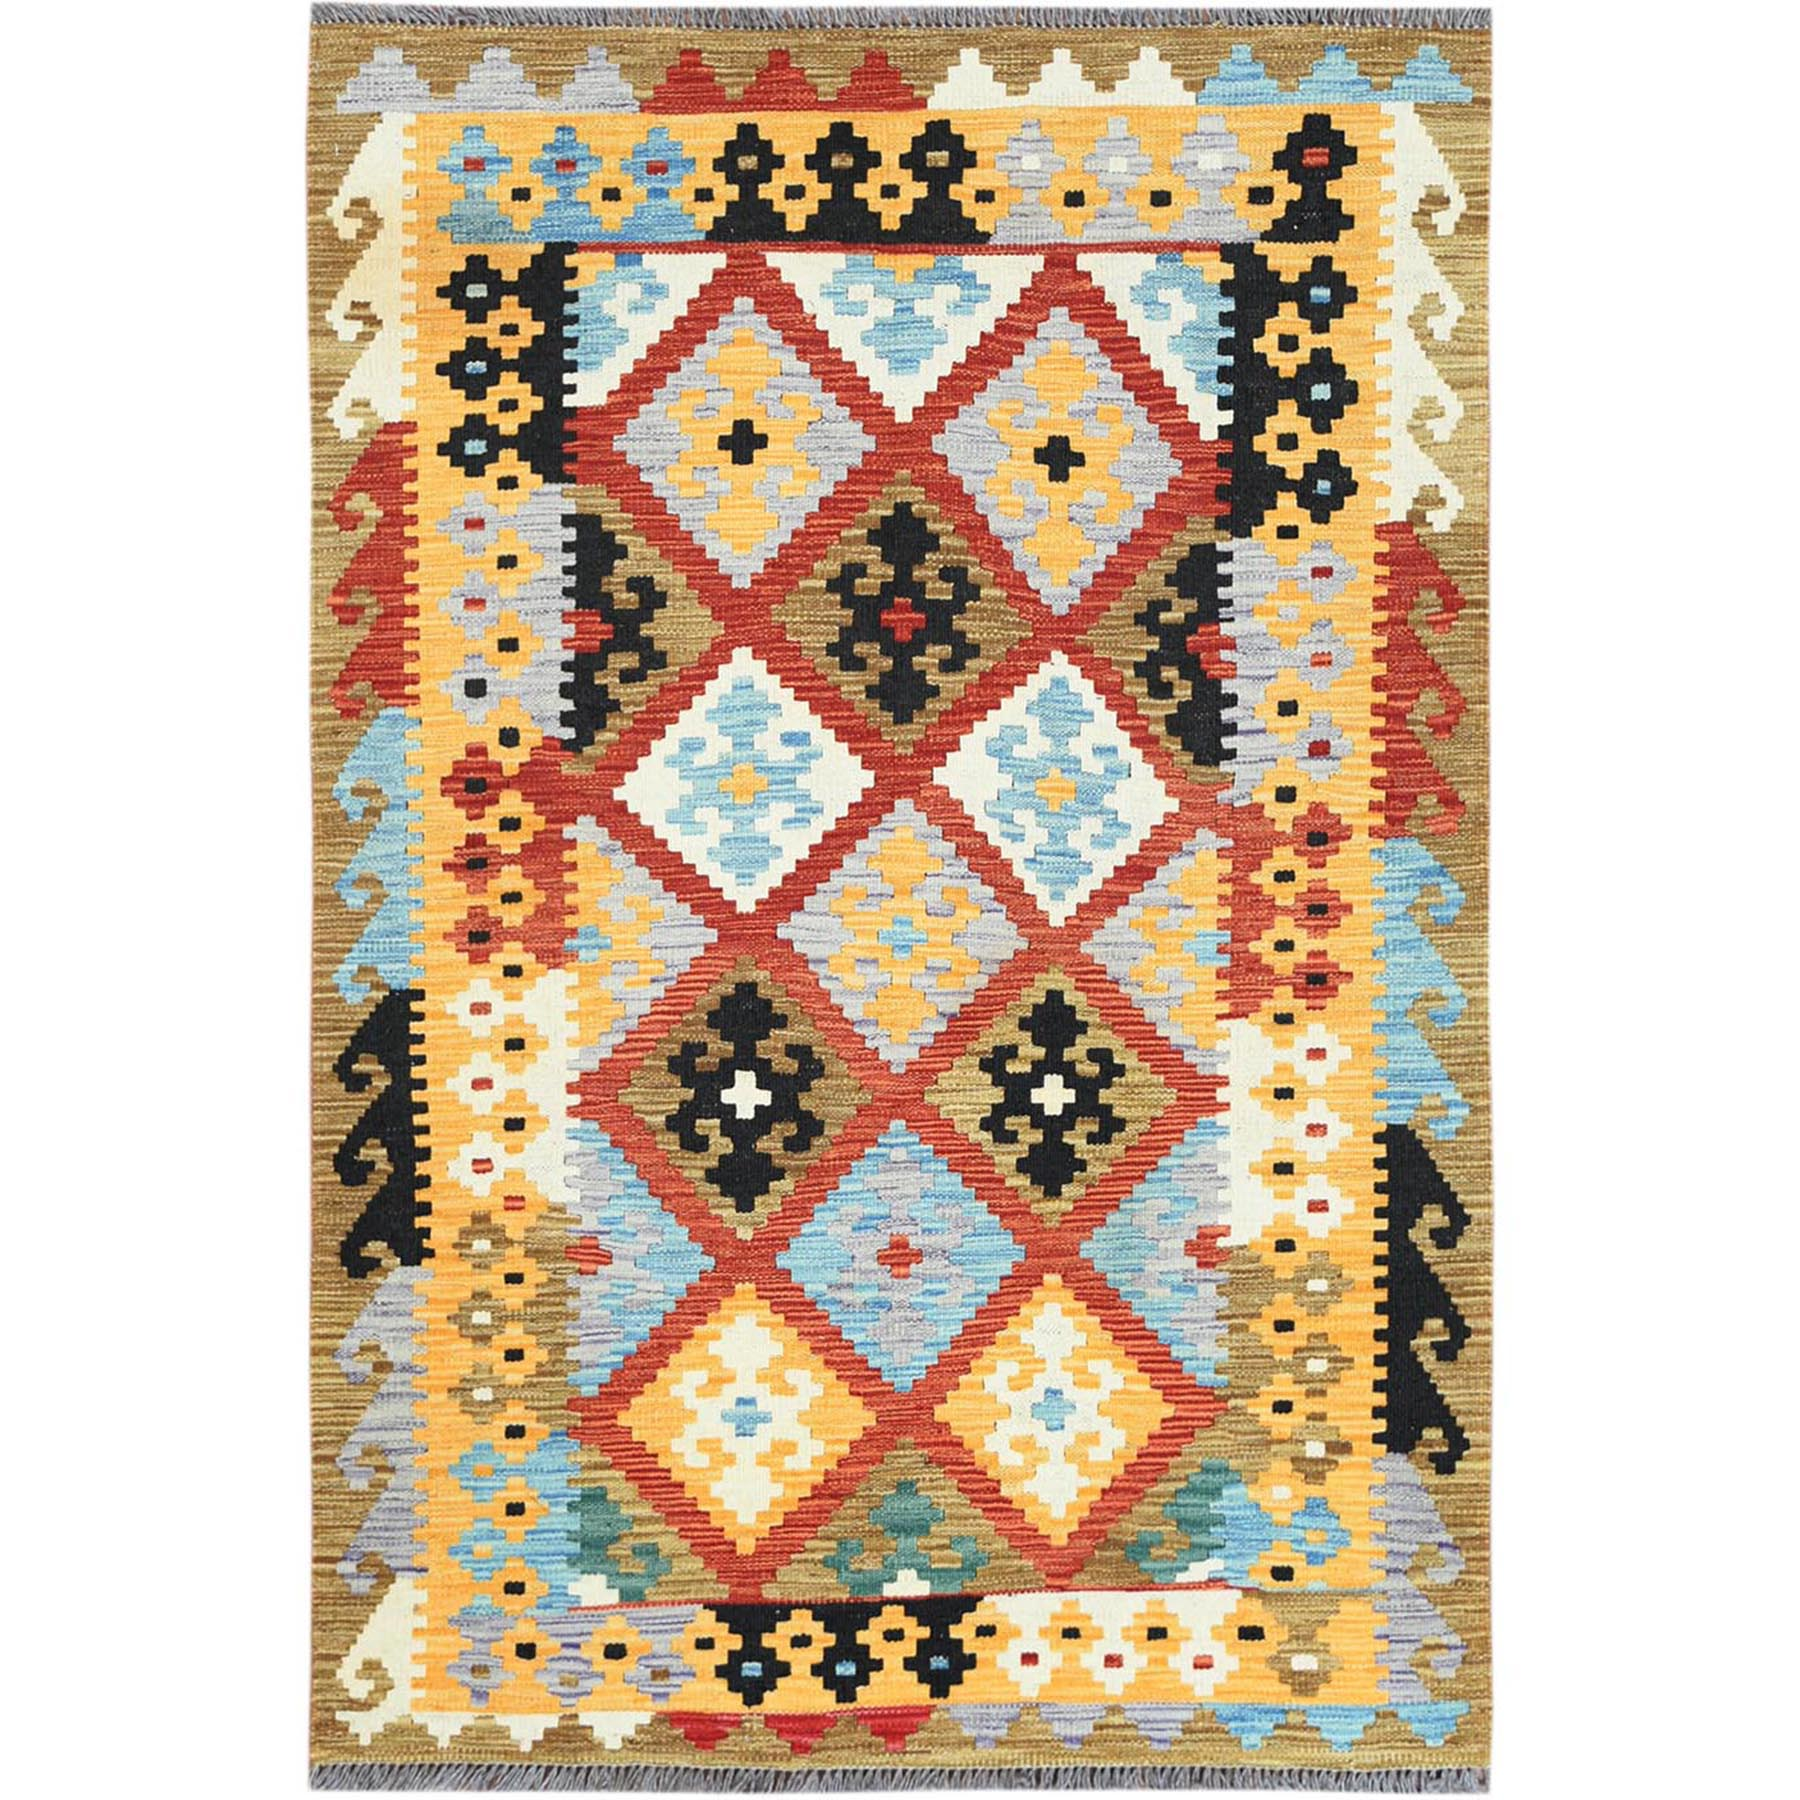 "3'4""x5' Colorful Afghan Kilim Geometric Design Organic wool Hand Woven Oriental Reversible Rug"